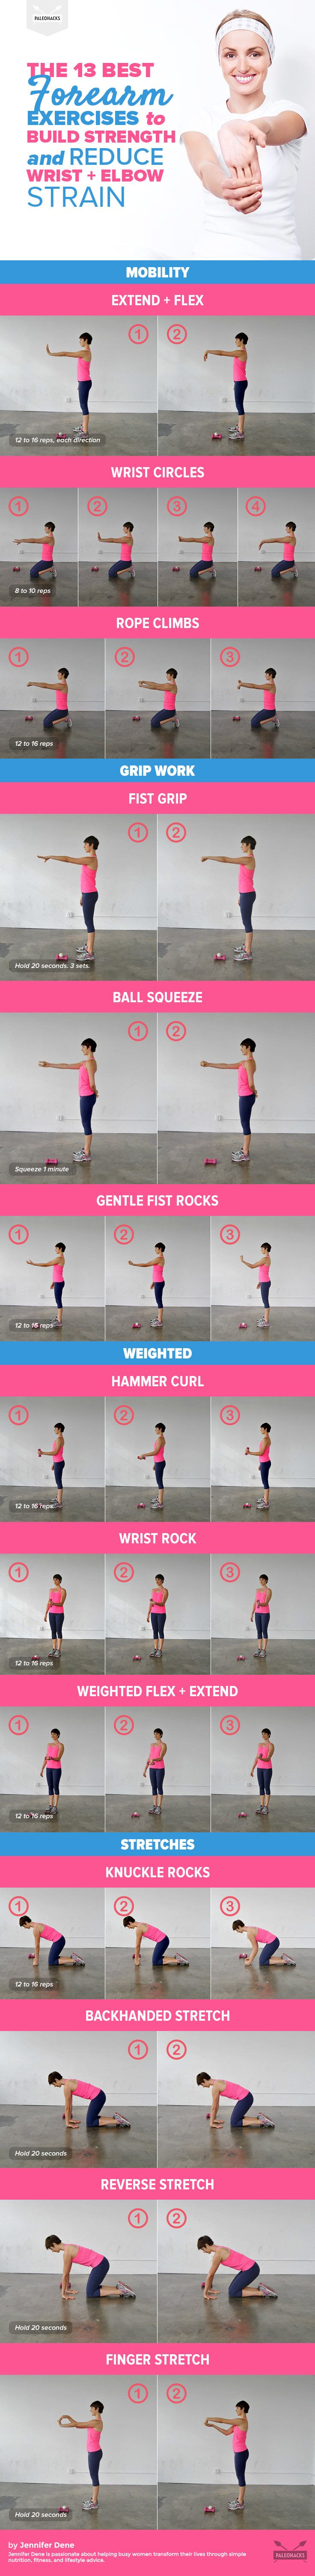 The 13 Best Forearm Exercises To Build Strength Reduce Wrist Strain With Images Easy Yoga Workouts Best Forearm Exercises Forearm Workout